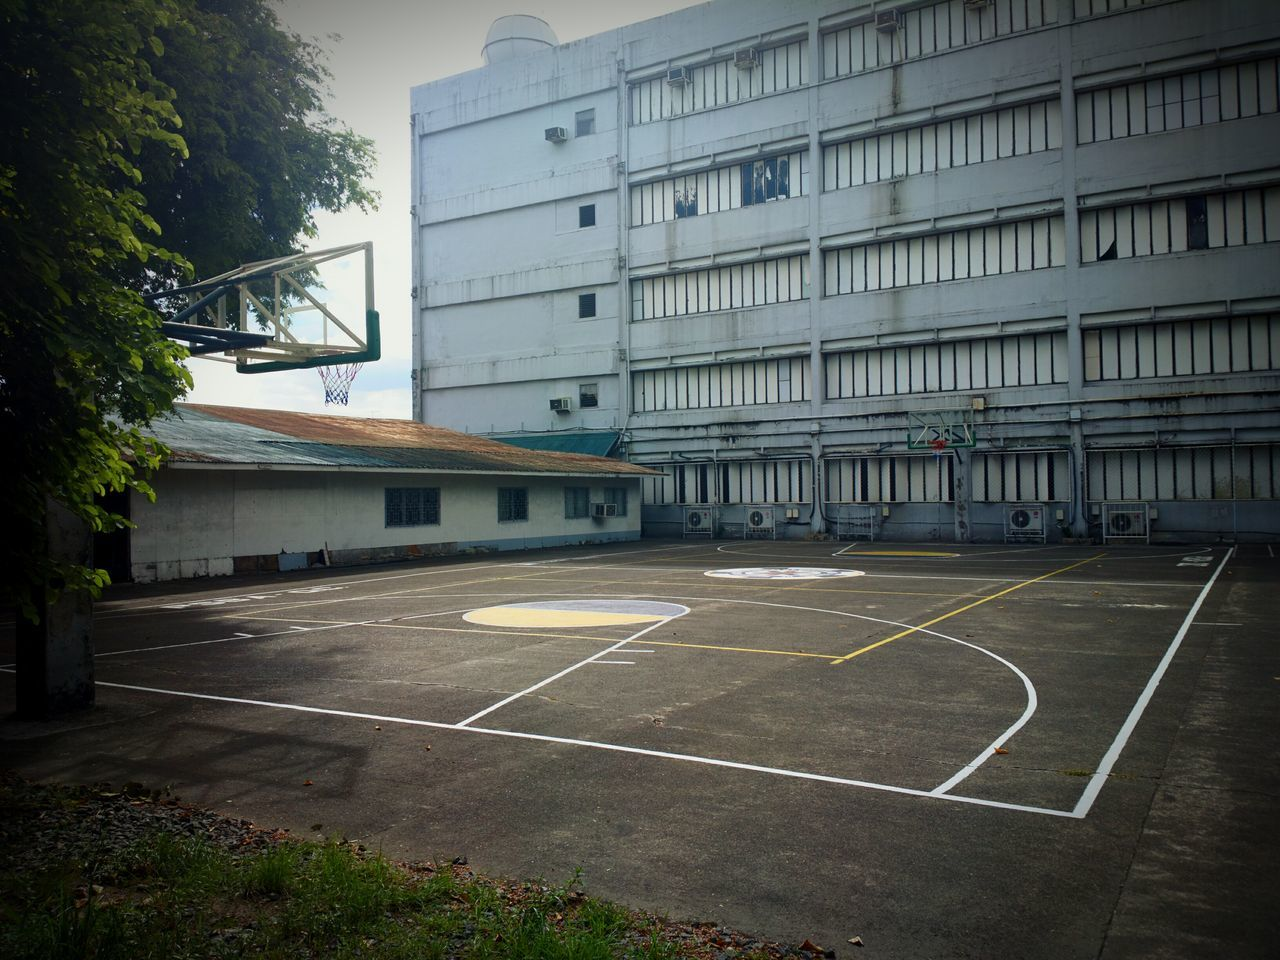 Built Structure Architecture Building Exterior Outdoors City No People Day Military EyeEmNewHere Nokia 808 Pureview  Nokiaphography Basketball Life Basketball Court Psba Qc